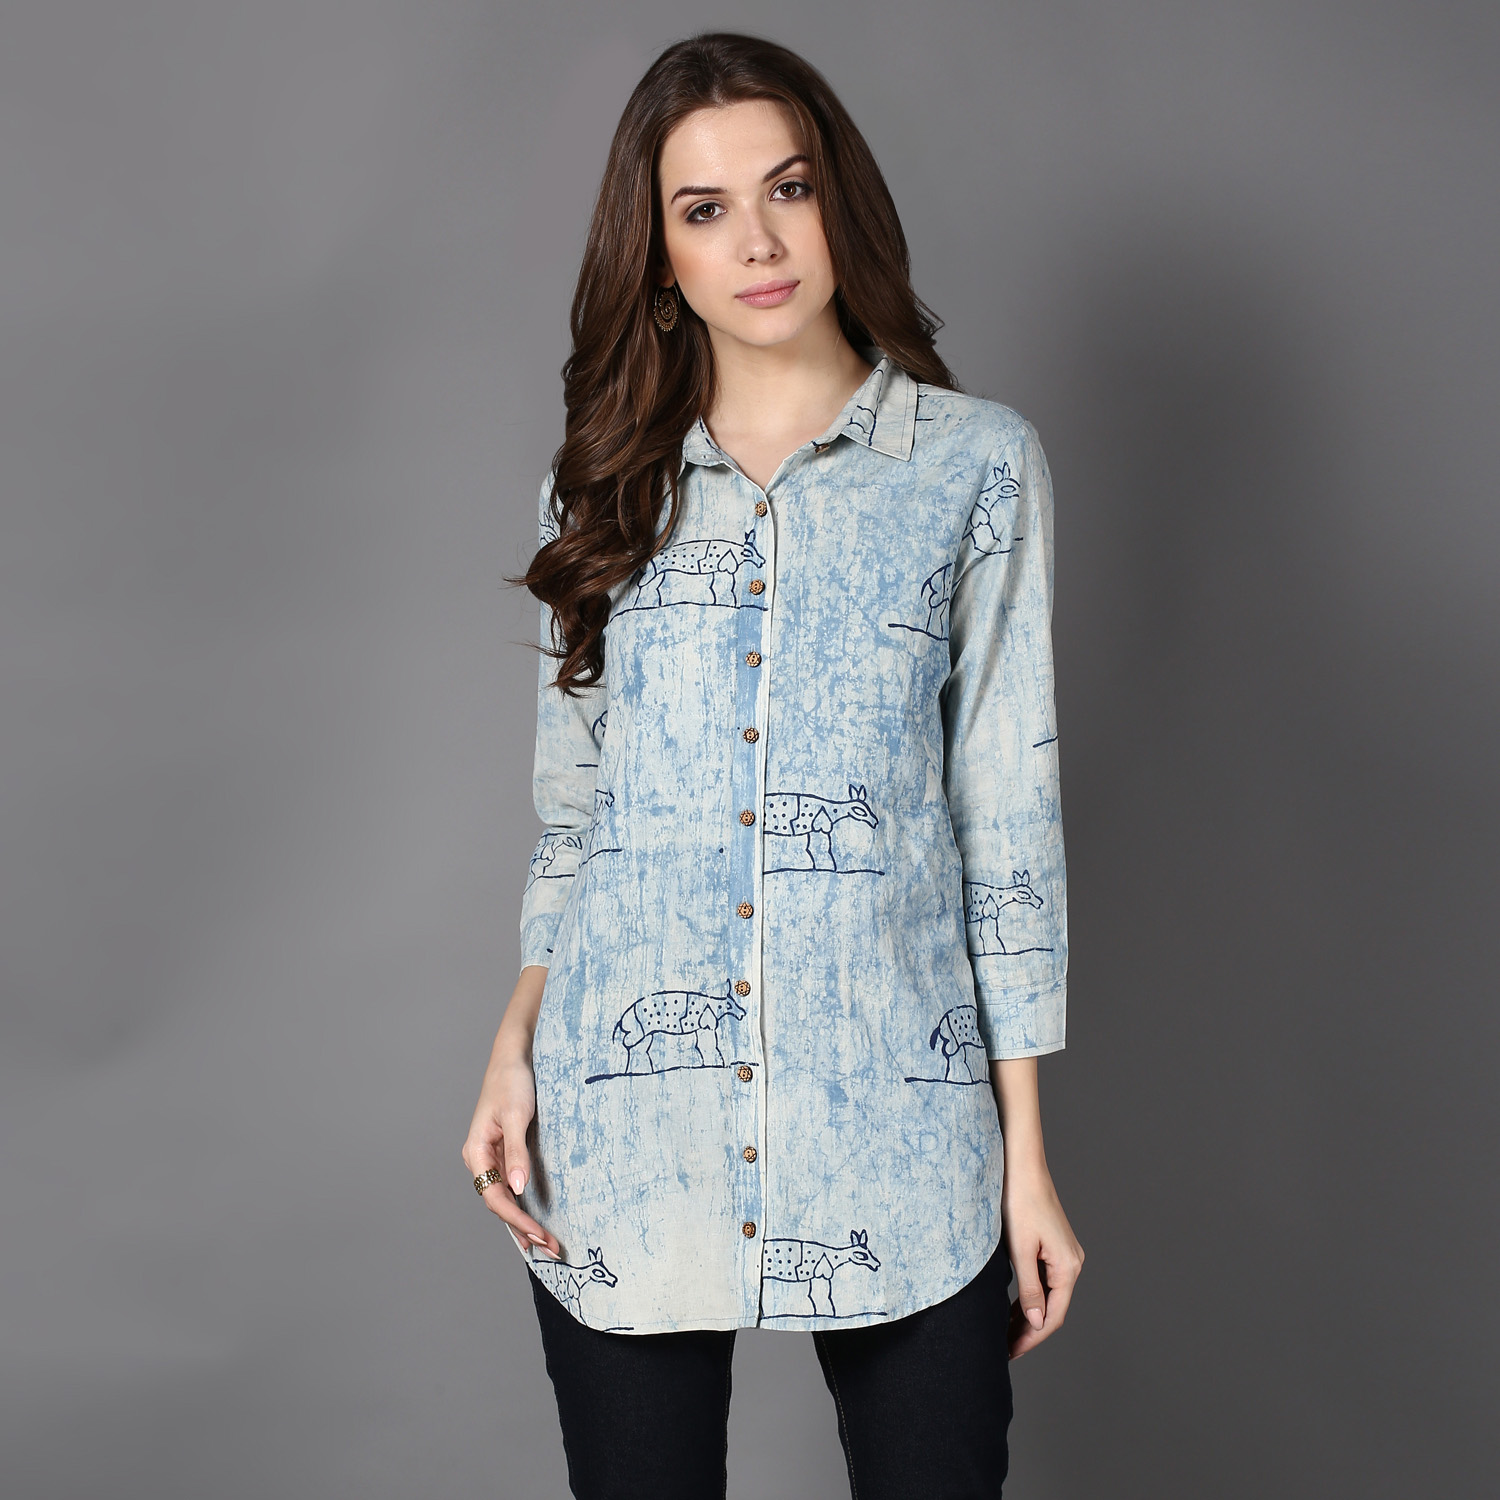 Blue Dabu block-printed shirt (INDI-401)